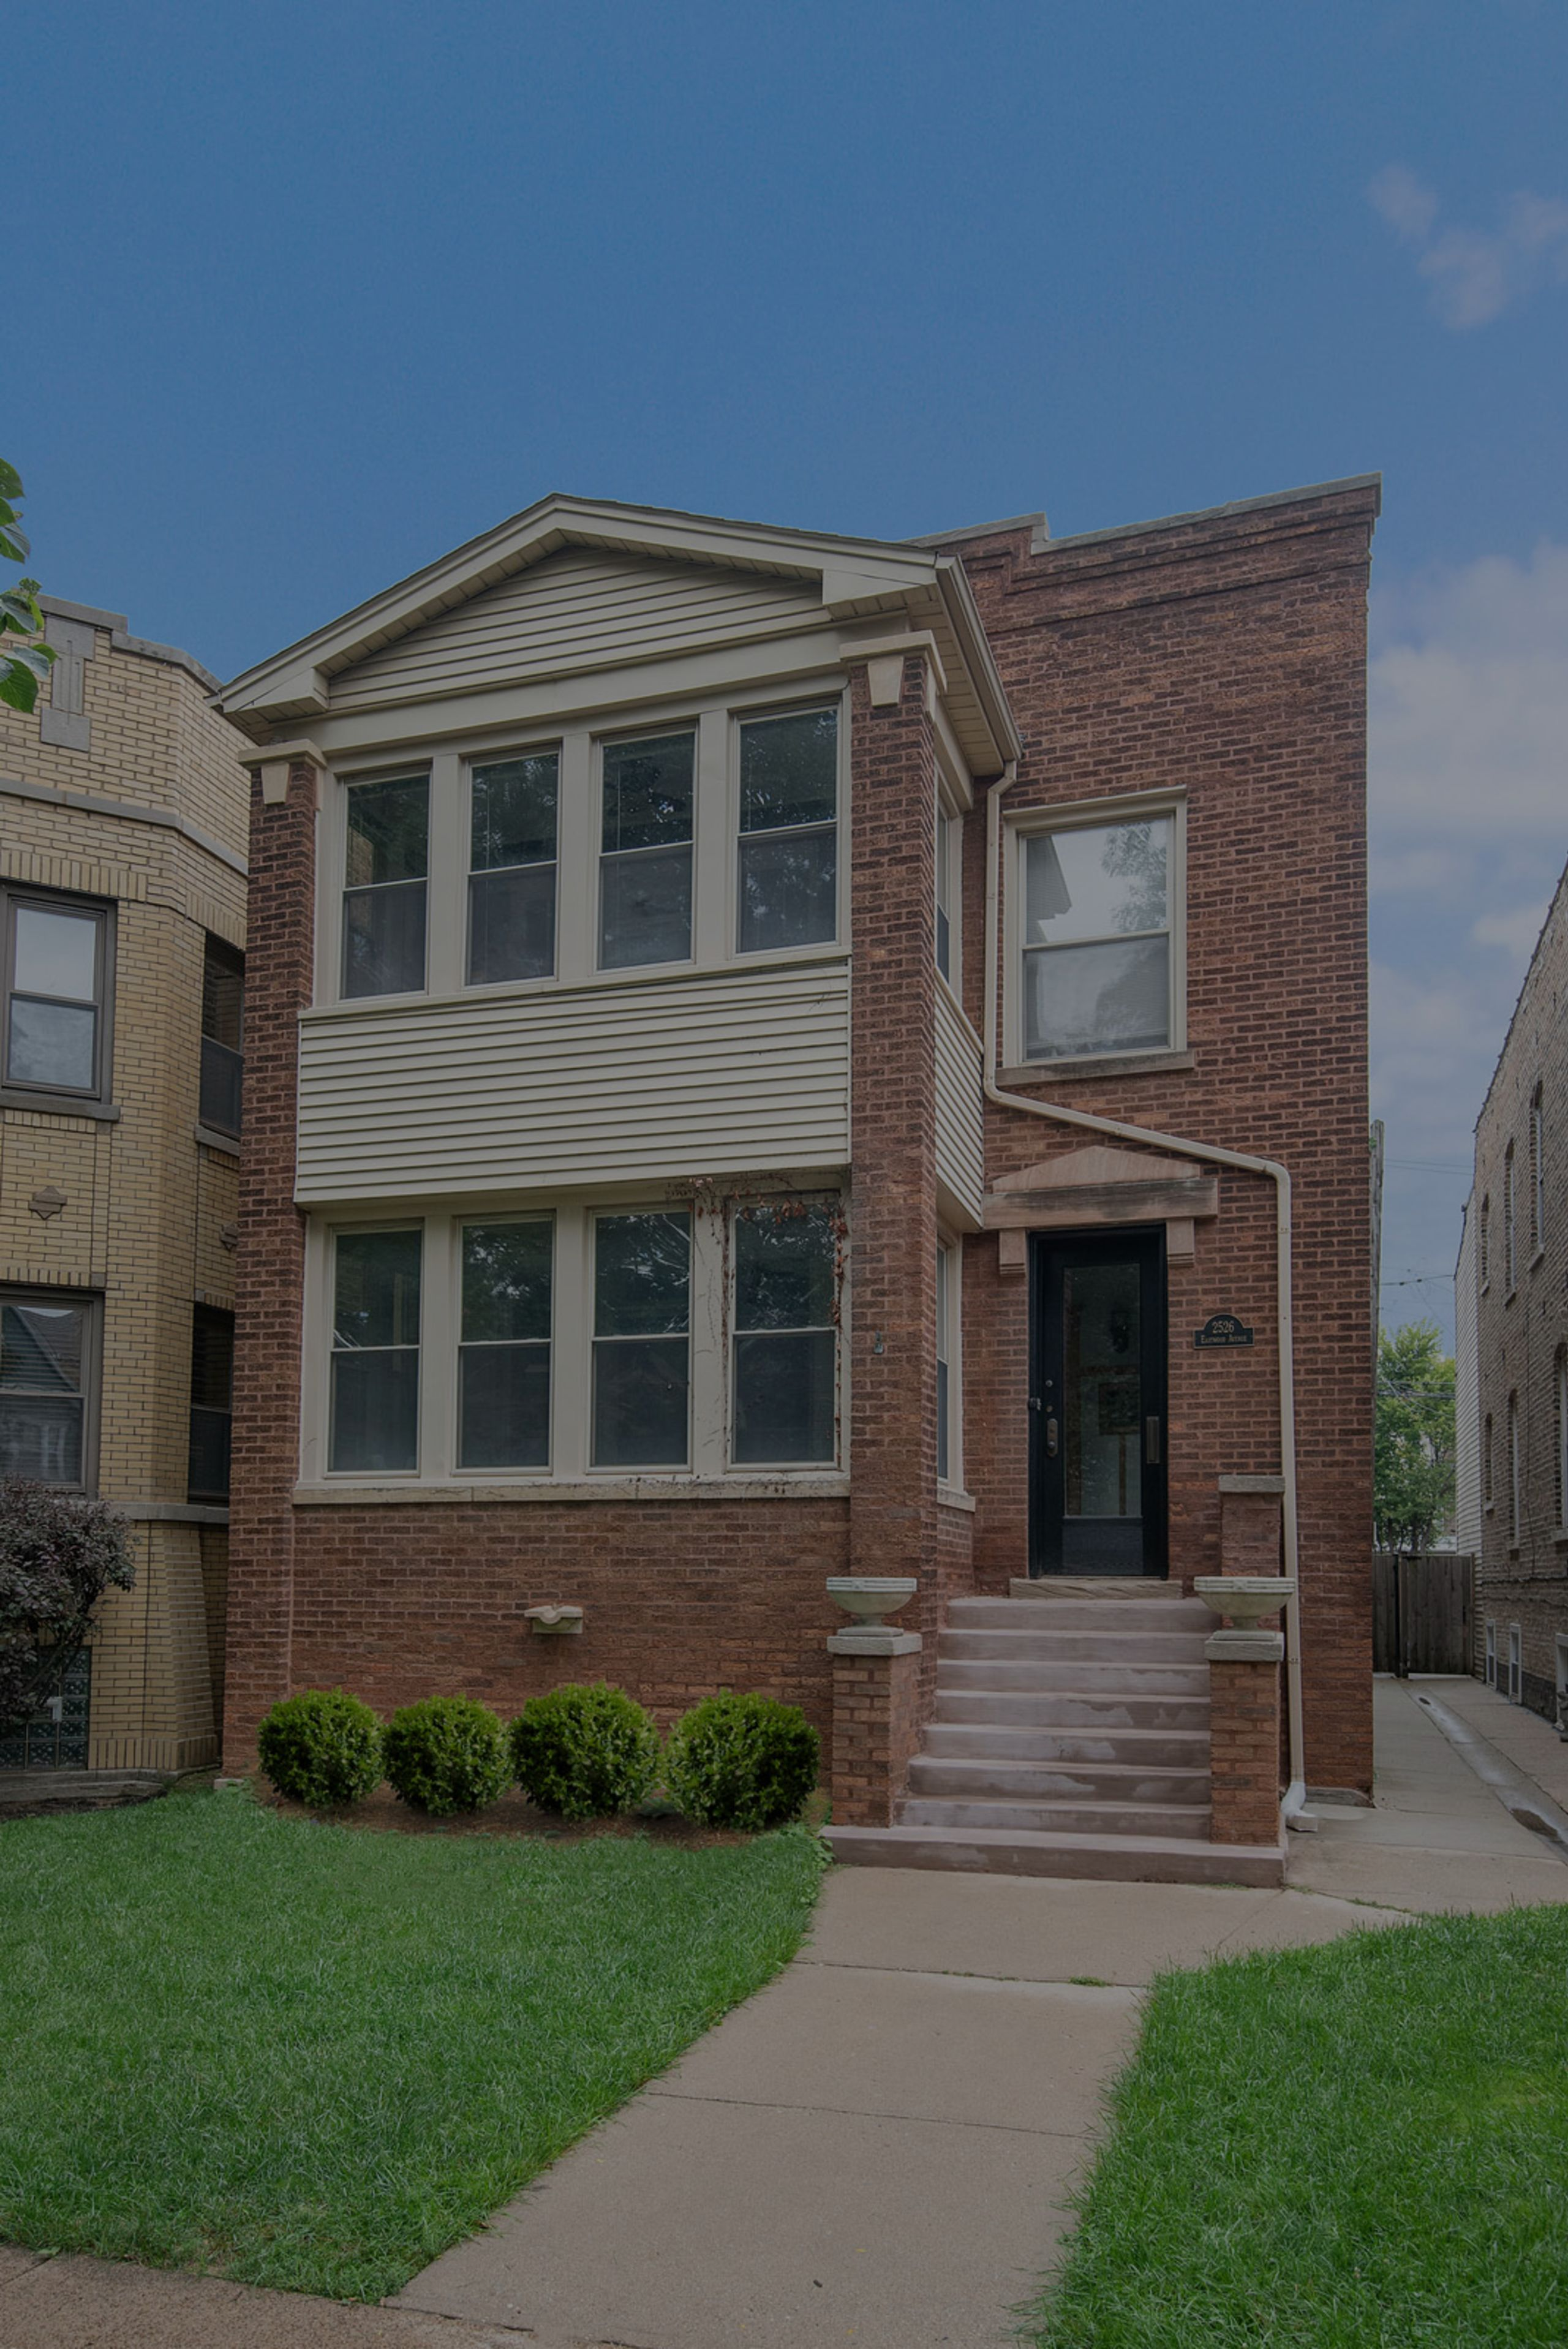 JUST SOLD: 2526 W EASTWOOD, Chicago, IL 60625